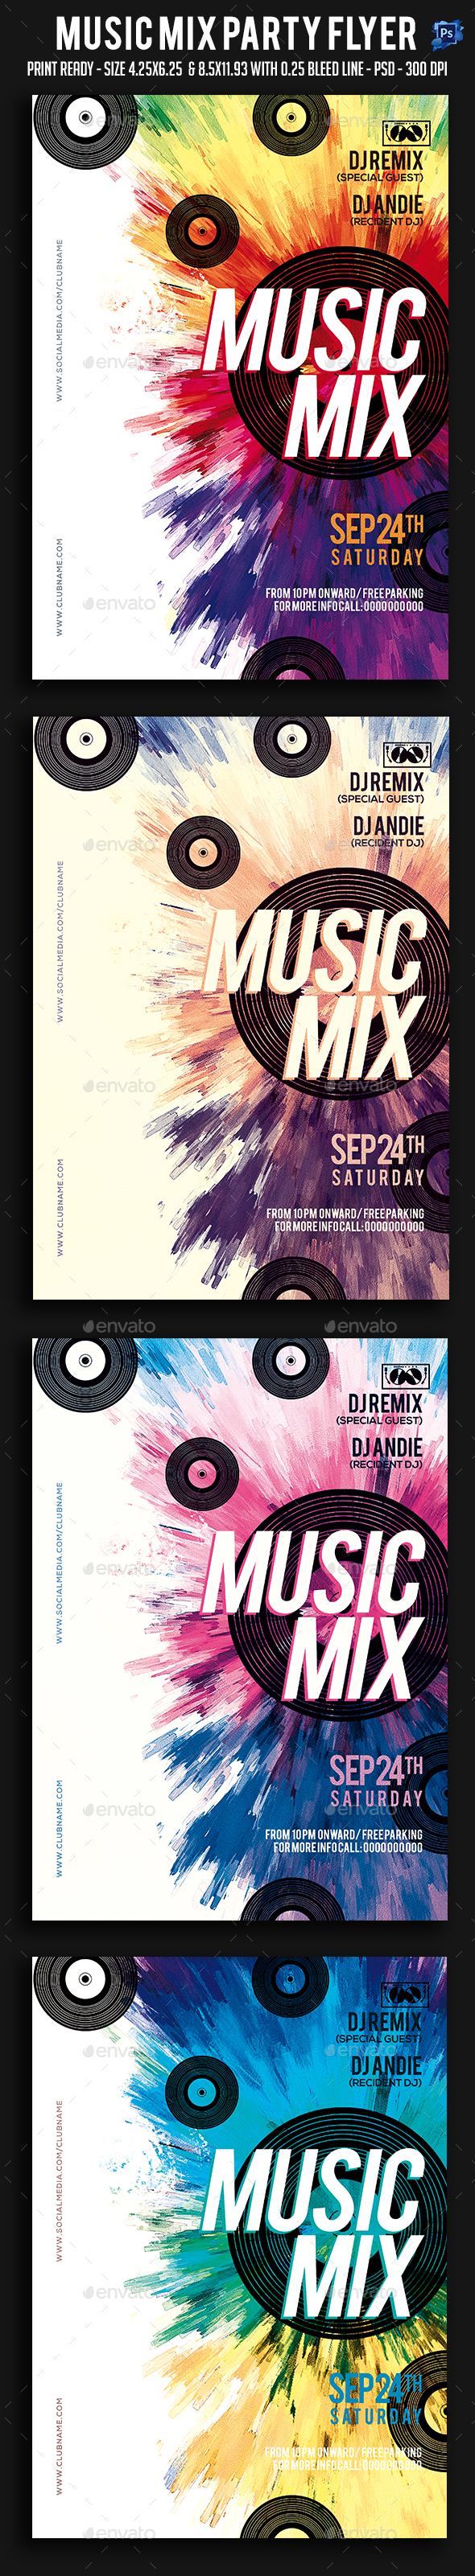 Music Mix Party Flyer - Clubs & Parties Events